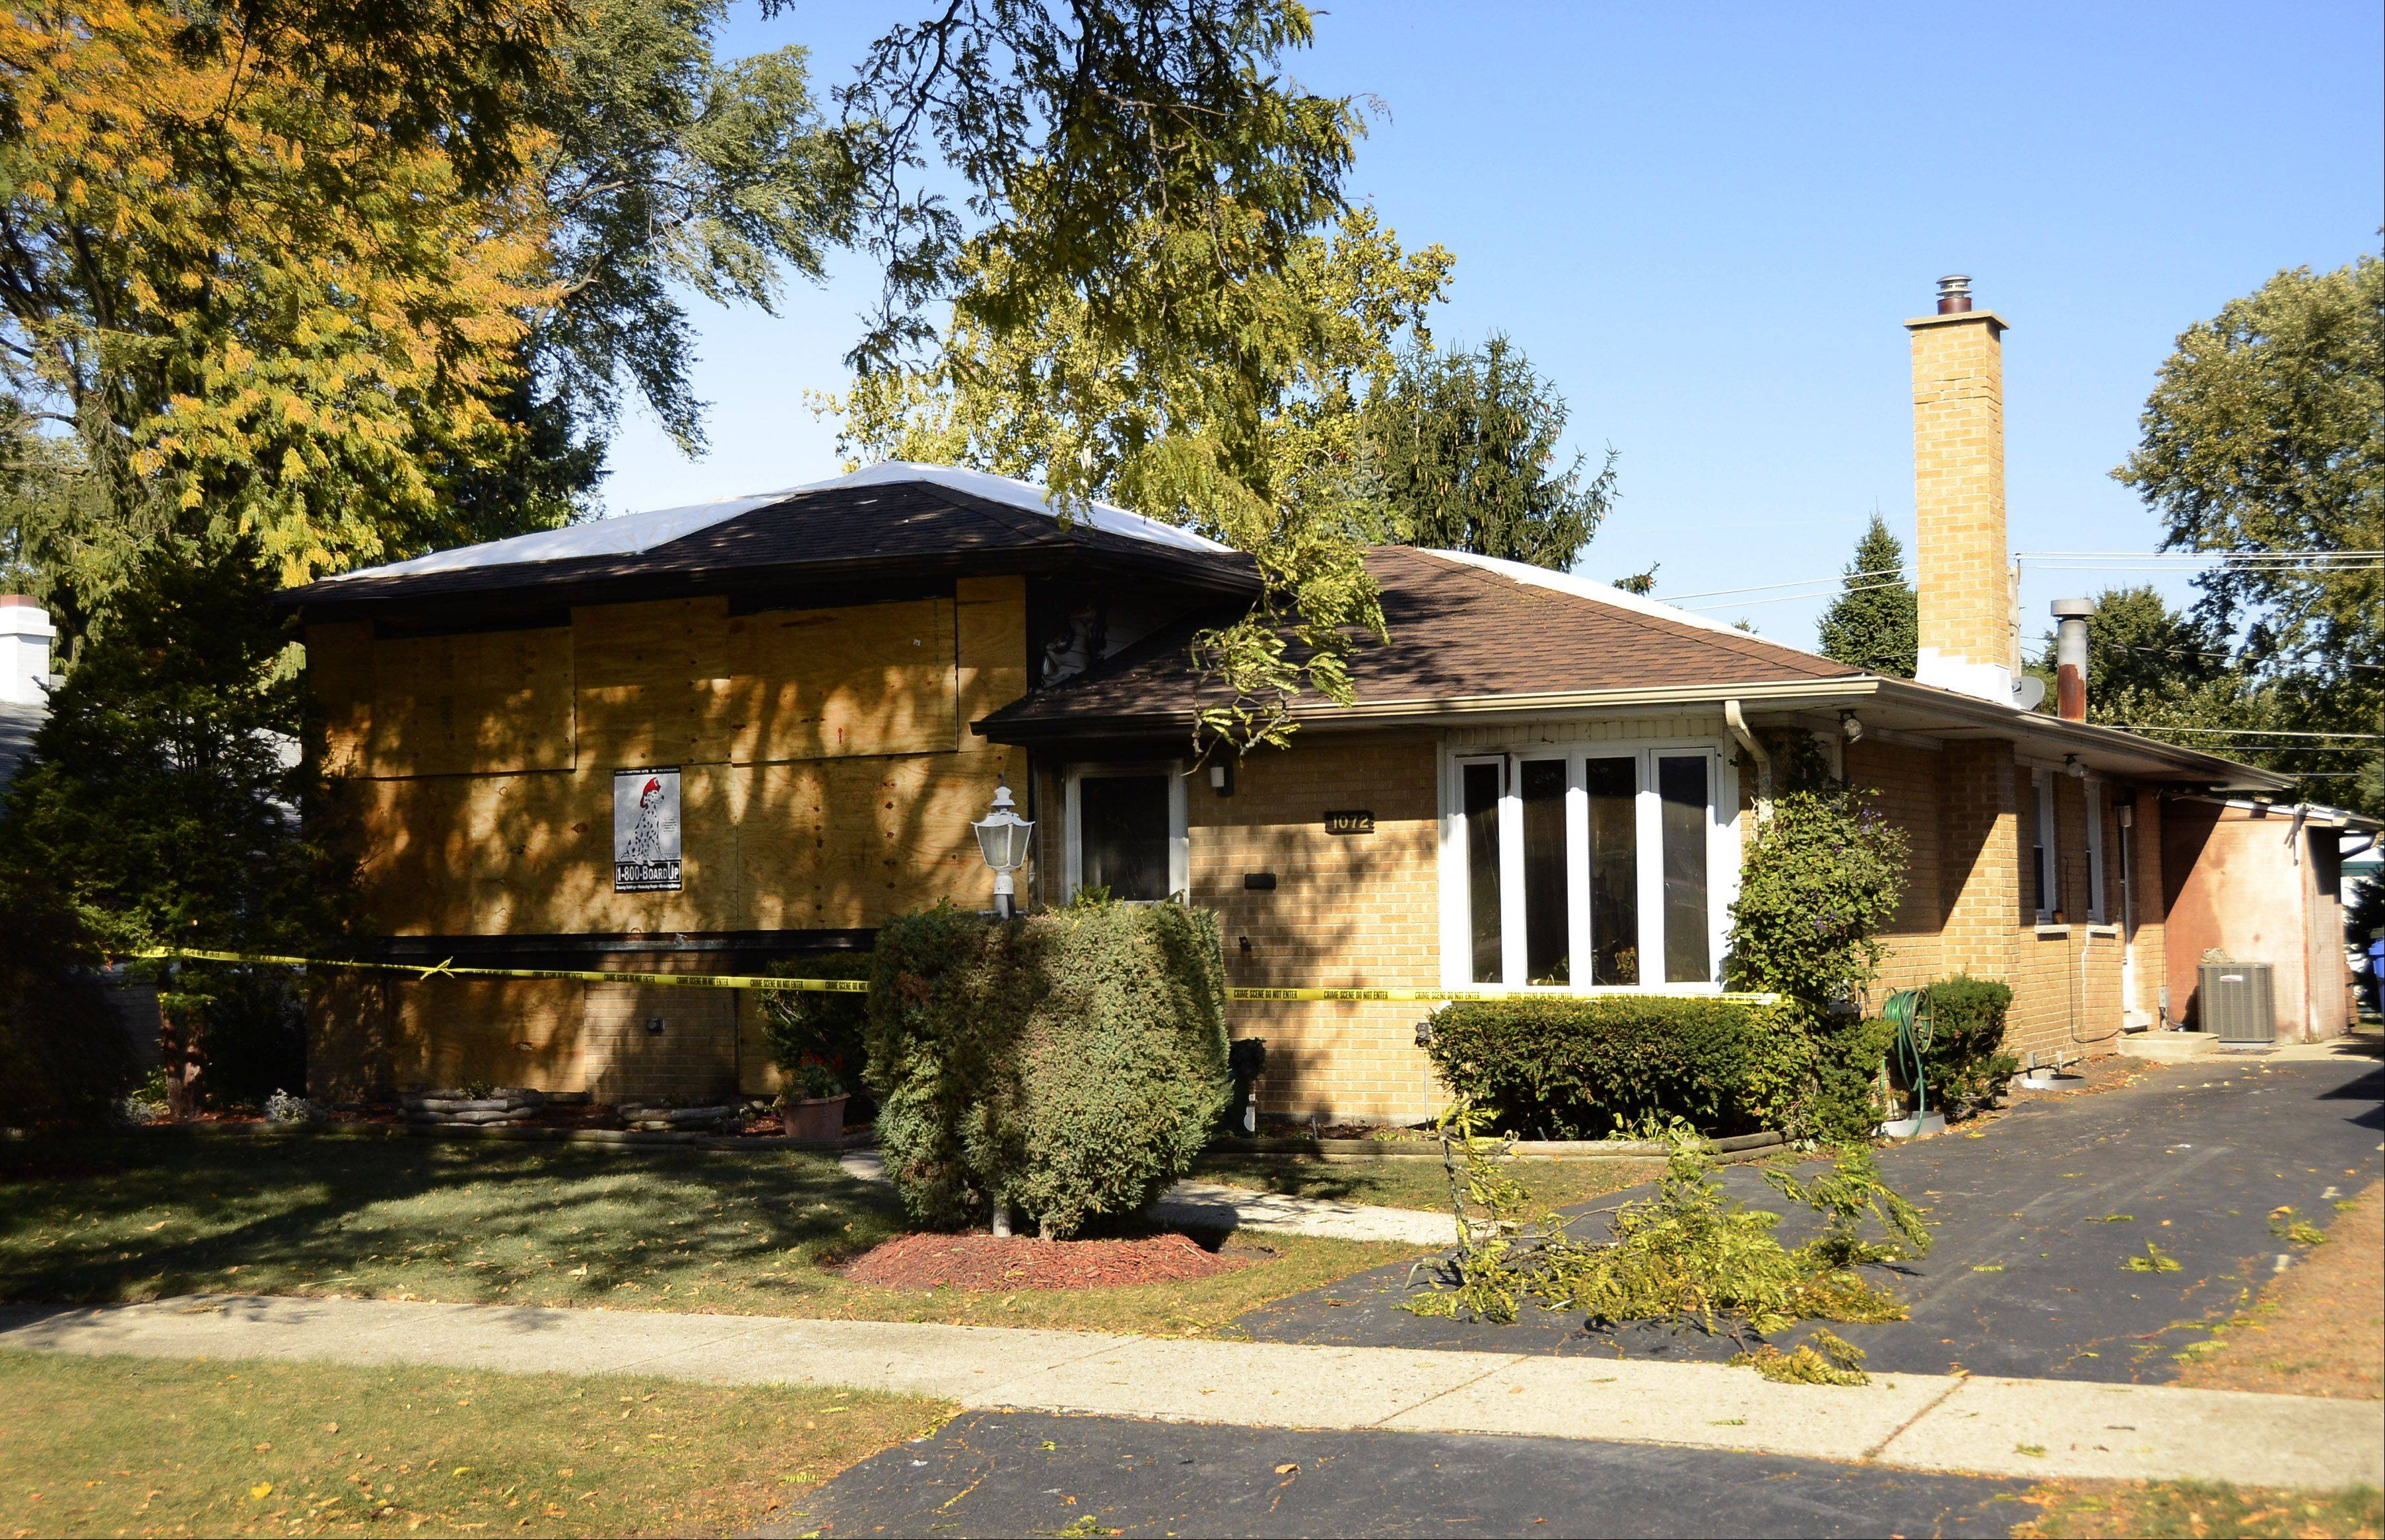 A woman died early Monday after fire swept through her Des Plaines home. Sandra Lupy, 48, of the 1000 block of Irwin Avenue, was found dead in a first floor bedroom after firefighters put out the 12:05 a.m. blaze, officials said. The cause of the fire is under investigation.